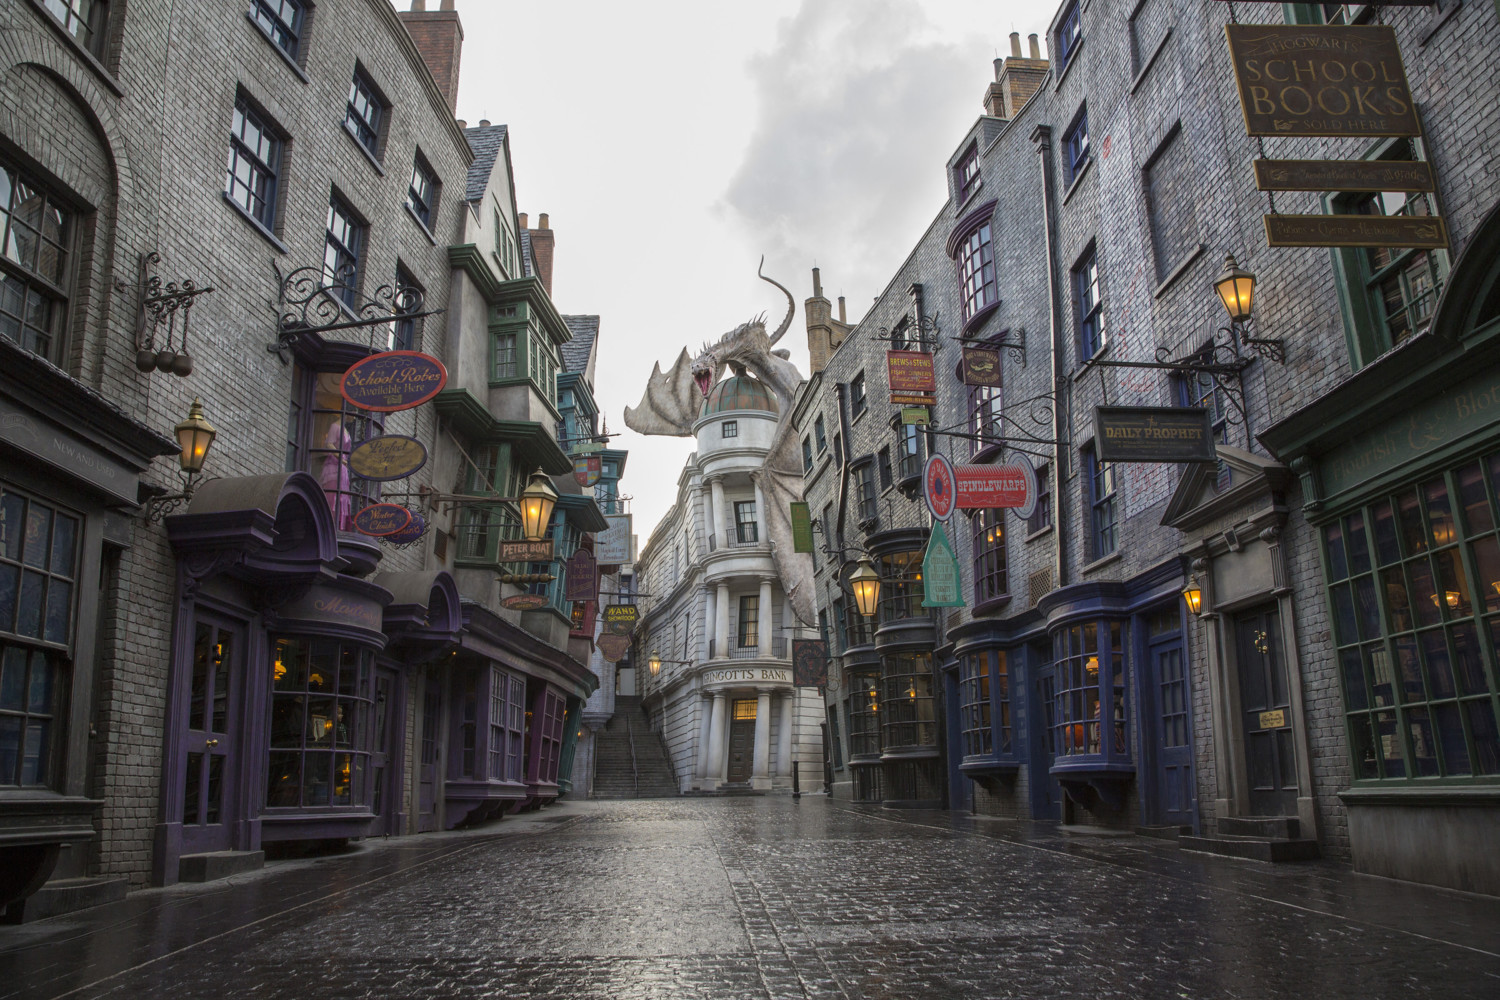 The Wizarding World Of Harry Potter Diagon Alley At Universal Orlando Resort - Day 2